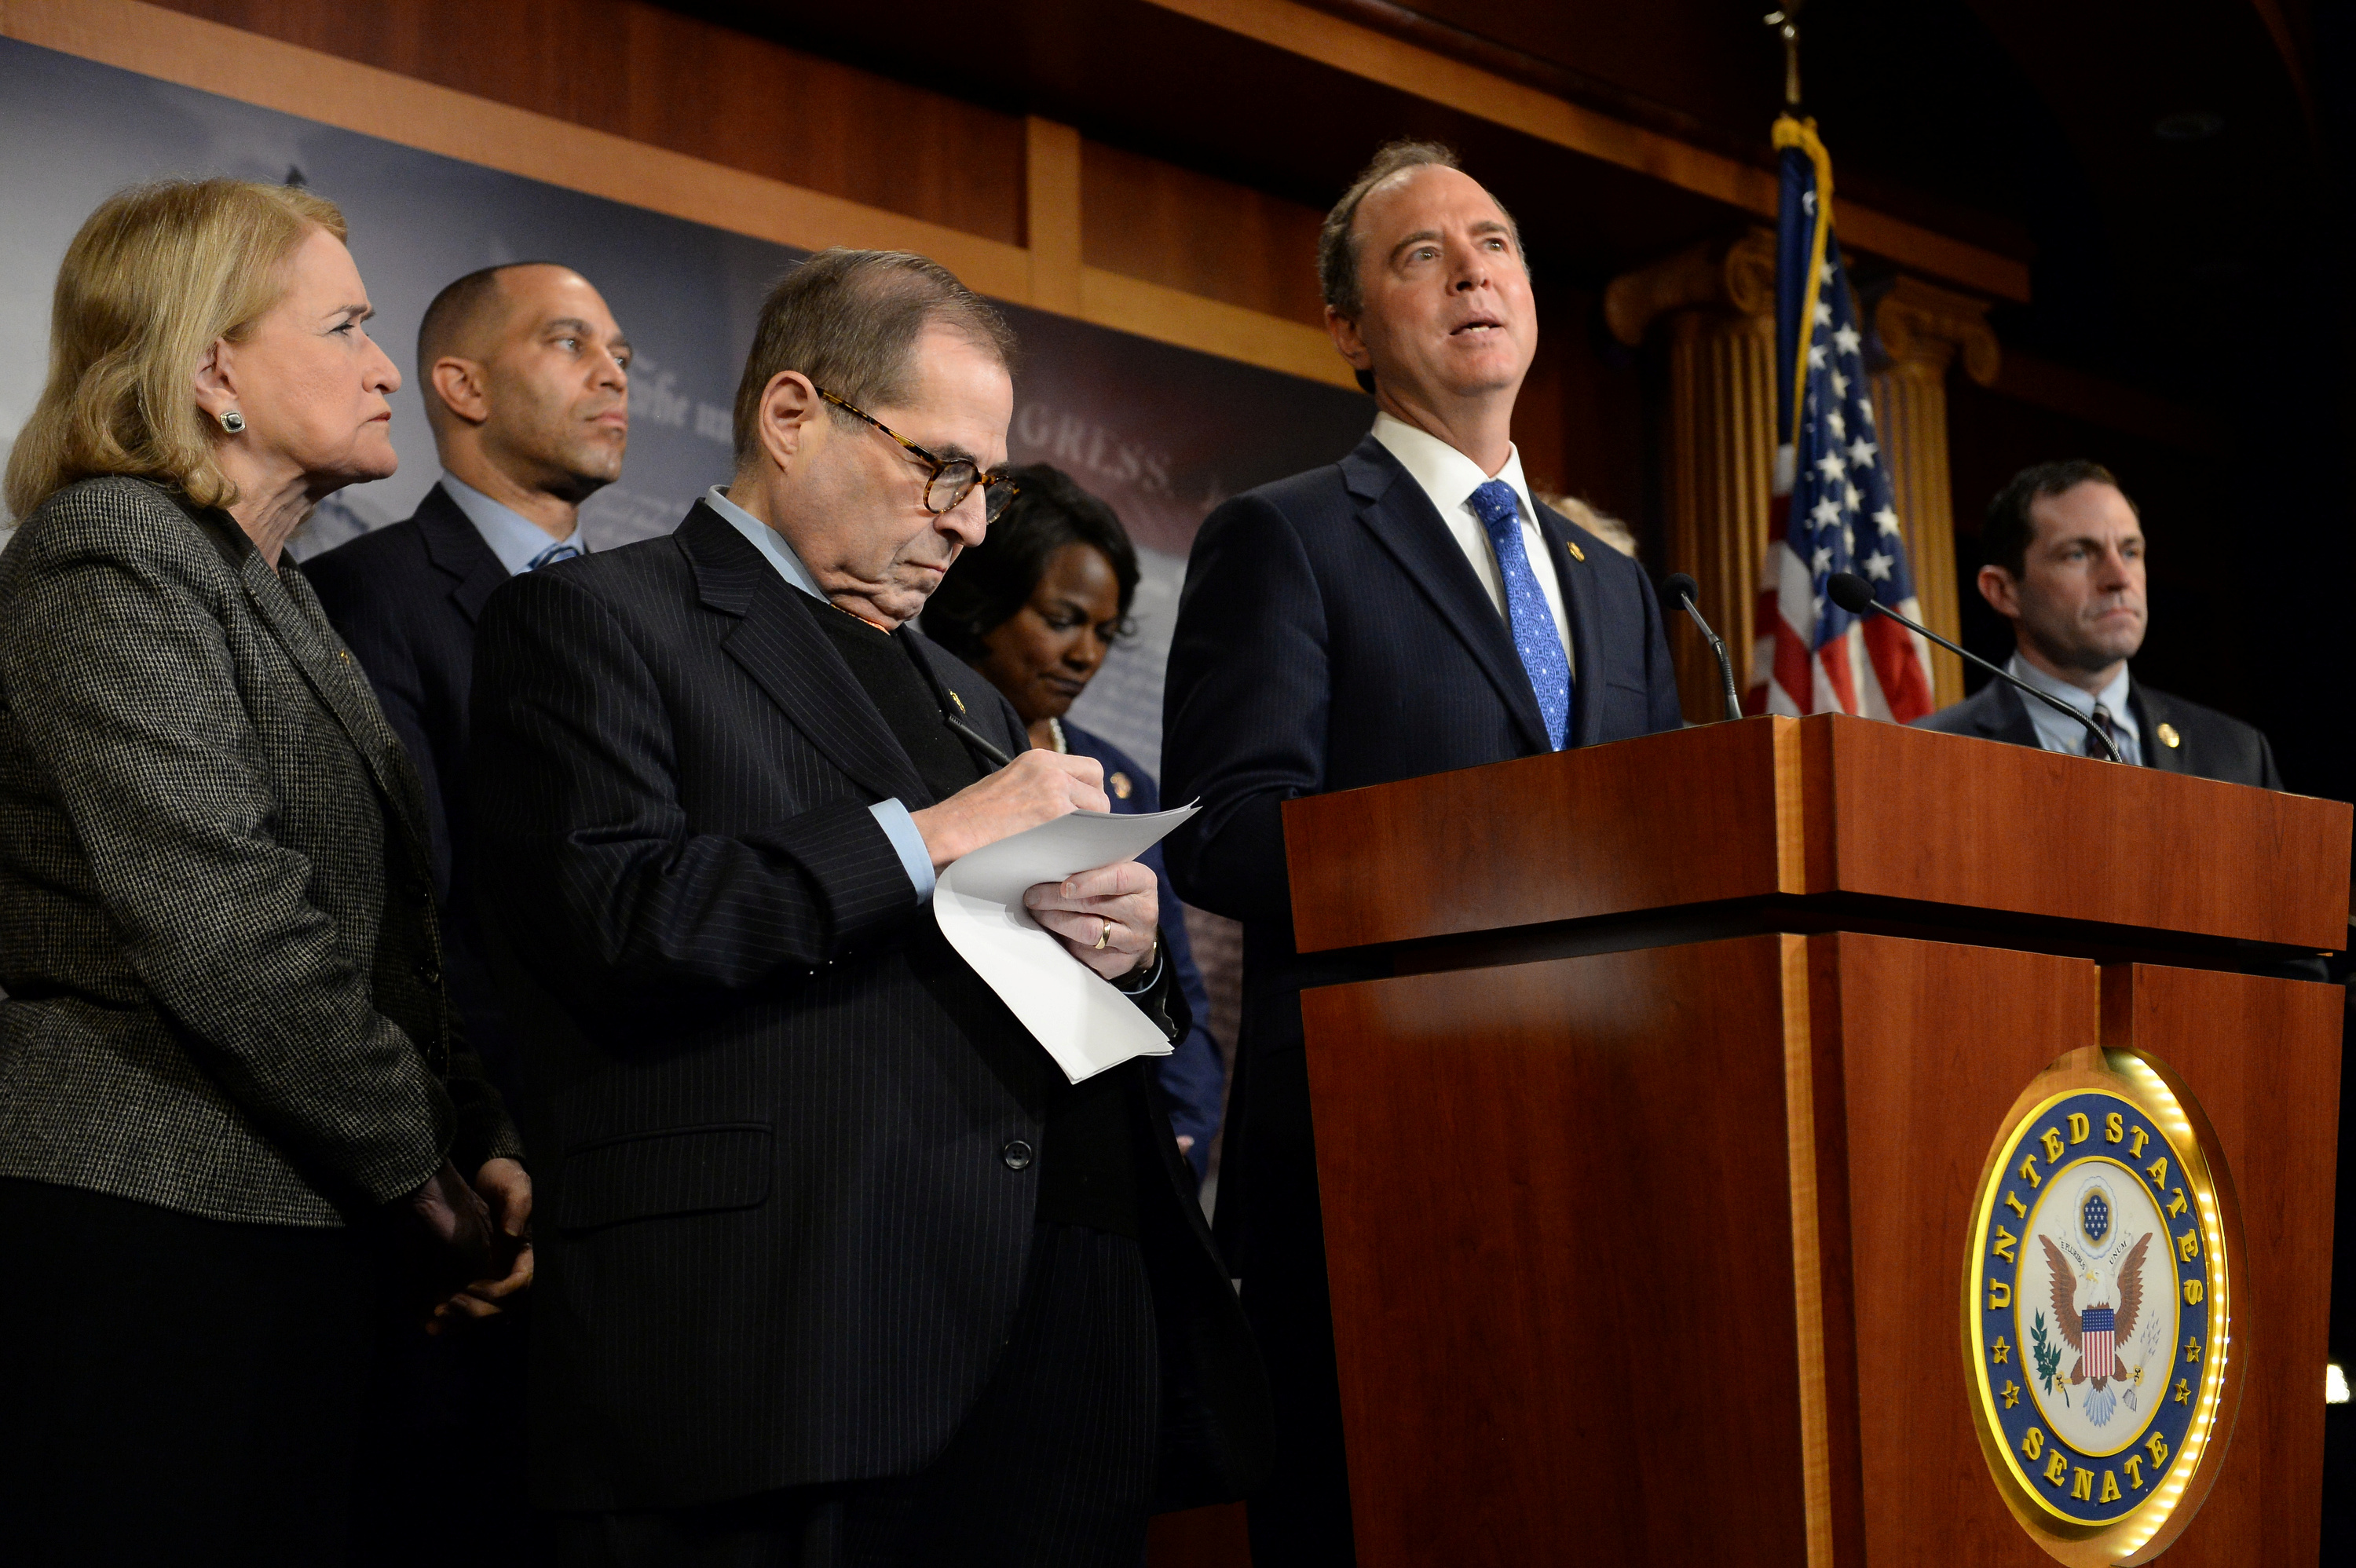 Rep. Adam Schiff (D-CA) speaks as fellow House Impeachment Managers, Sylvia Garcia (D-TX), Hakeem Jeffries (D-NY), Jerry Nadler (D-NY), Val Demings (D-FL), Zoe Lofgren (D-CA) and Jason Crow (D-CO), listen after the impeachment trial of U.S. President Donald Trump ended for the day in Washington, U.S., Jan. 25, 2020. REUTERS/Mary F. Calvert